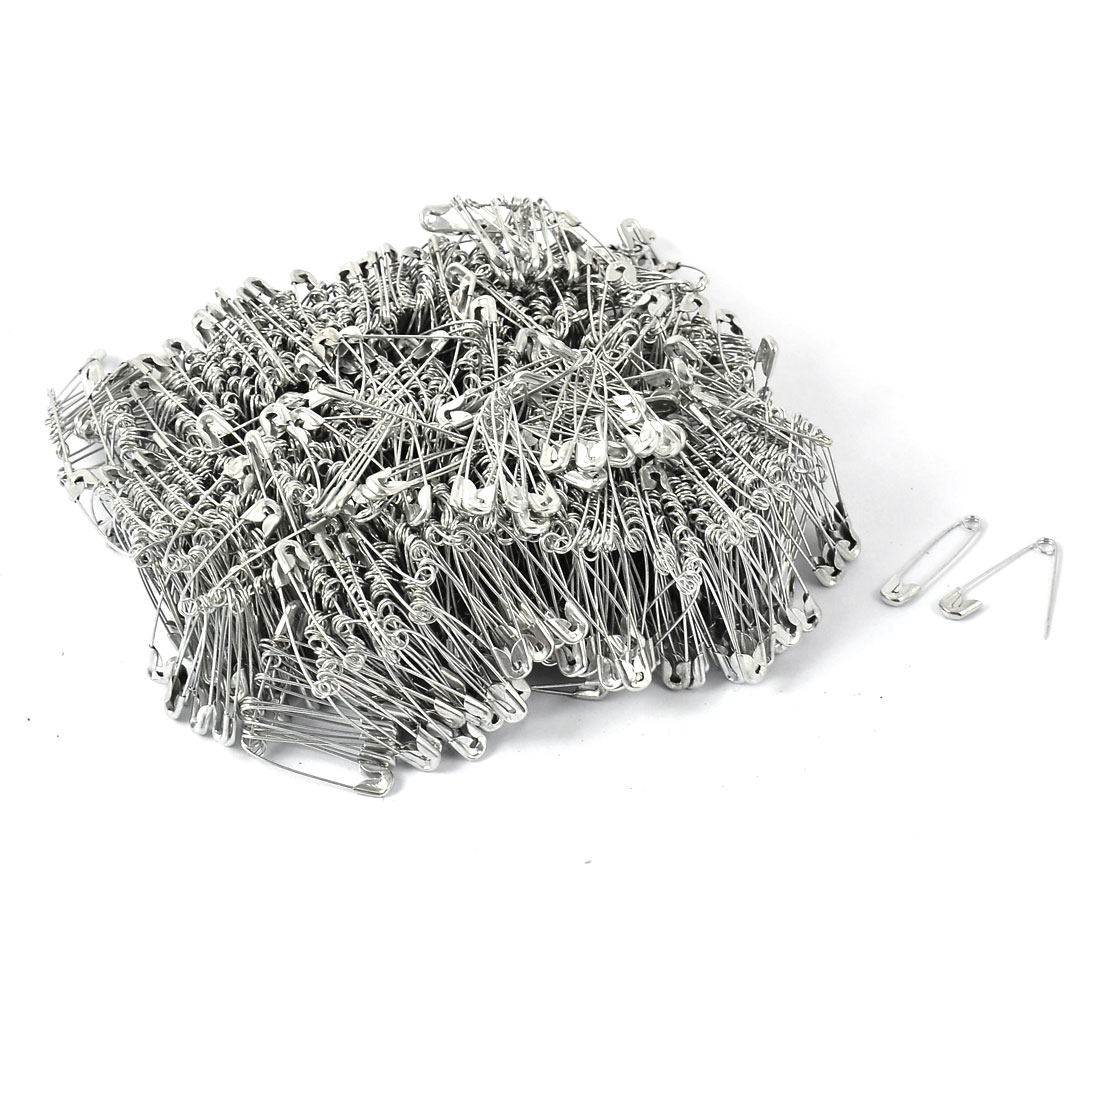 Cloth Trimming Fastening Sewing Dressmaking Craft Work Safety Pins 1000pcs